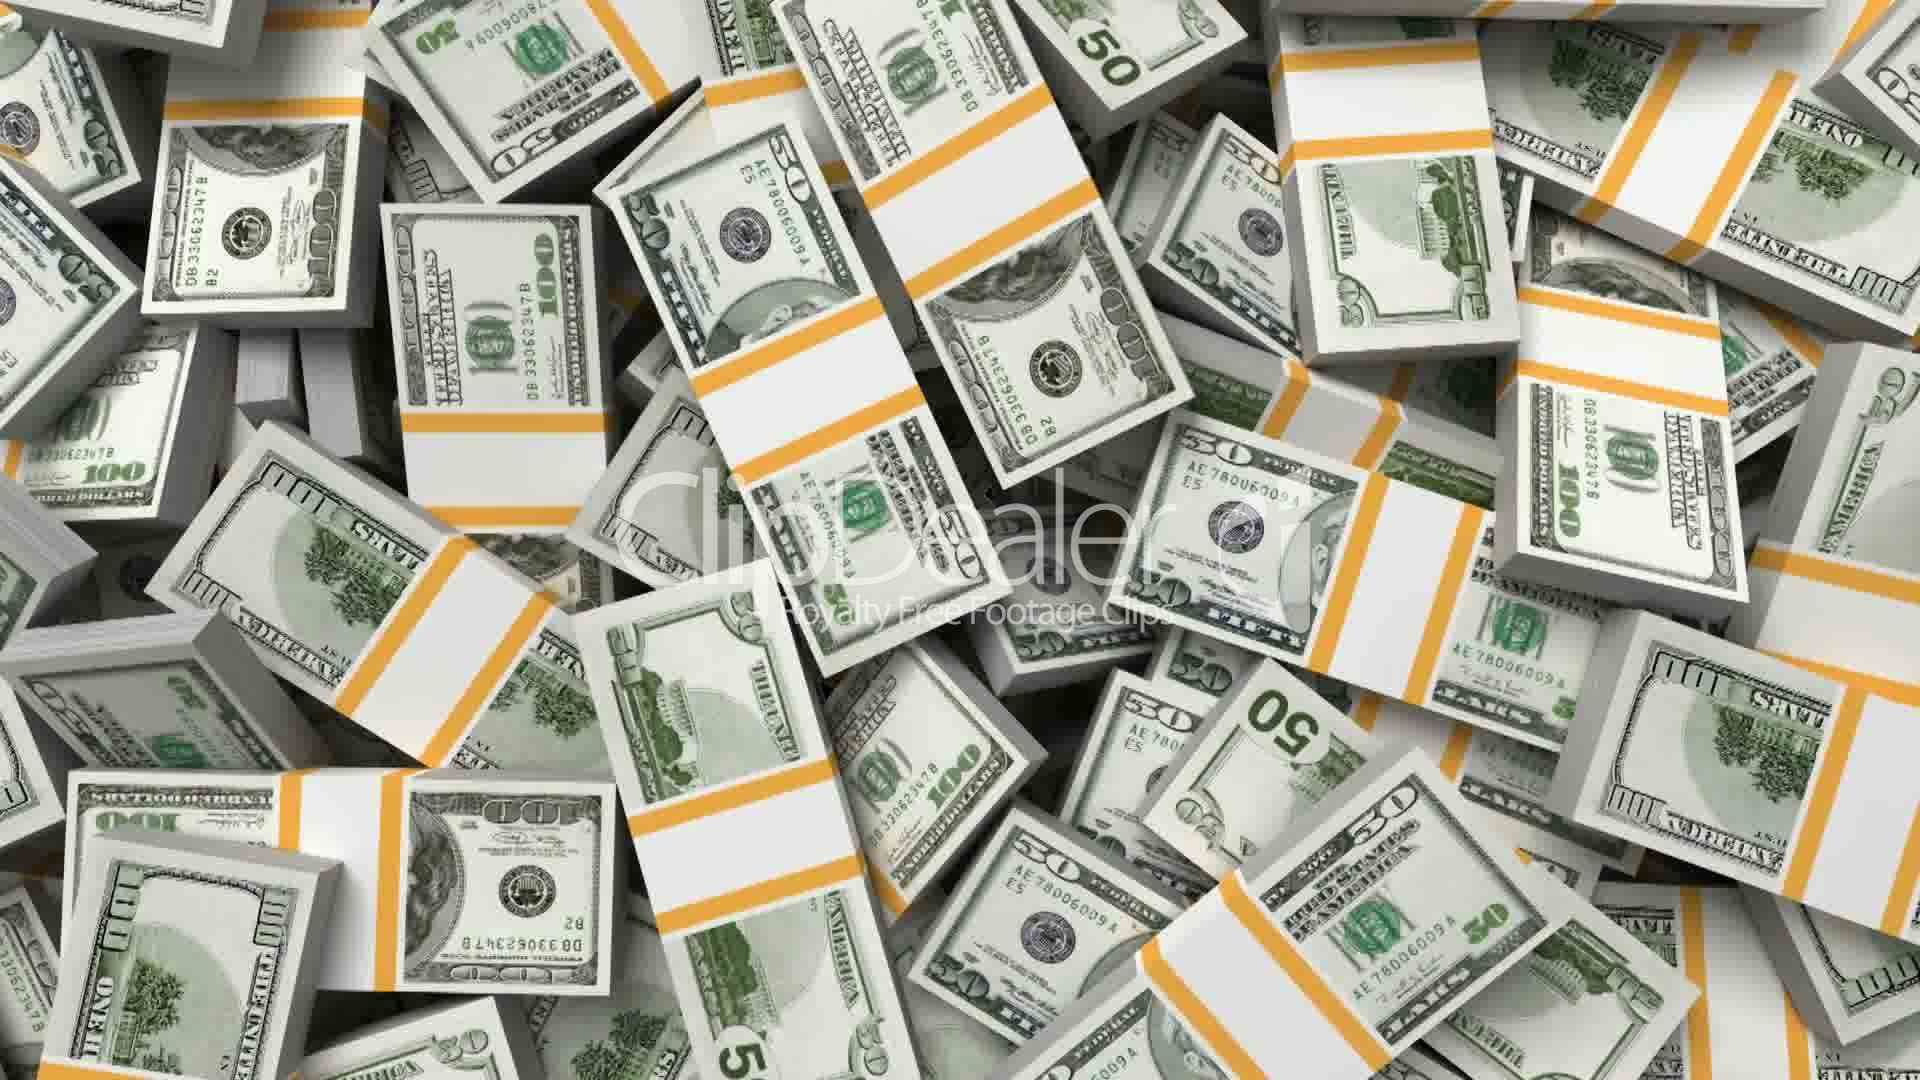 Money Images Free Desktop Backgrounds Money images